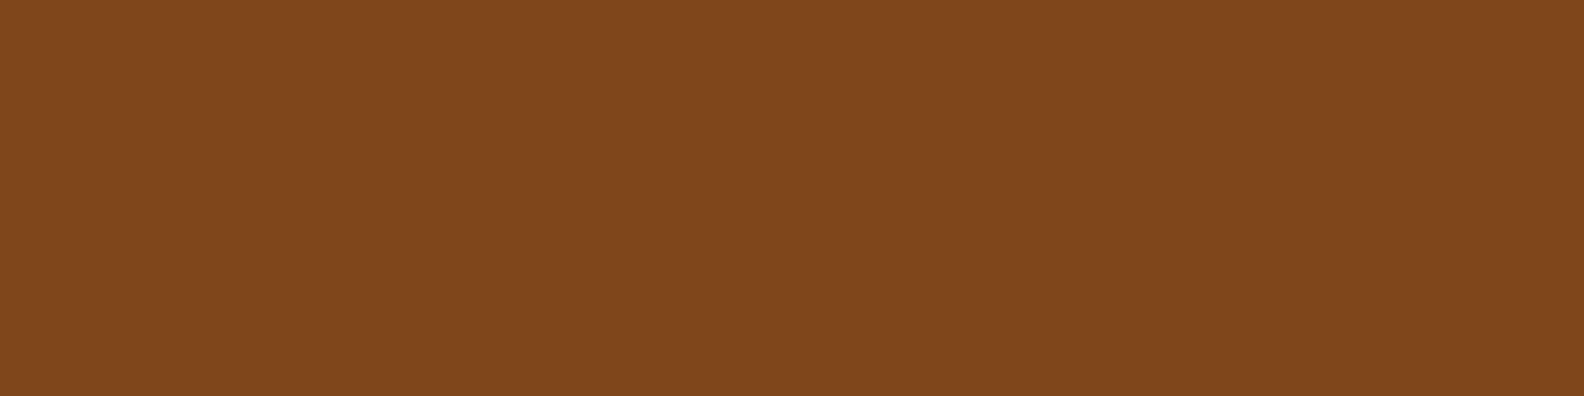 1584x396 Russet Solid Color Background